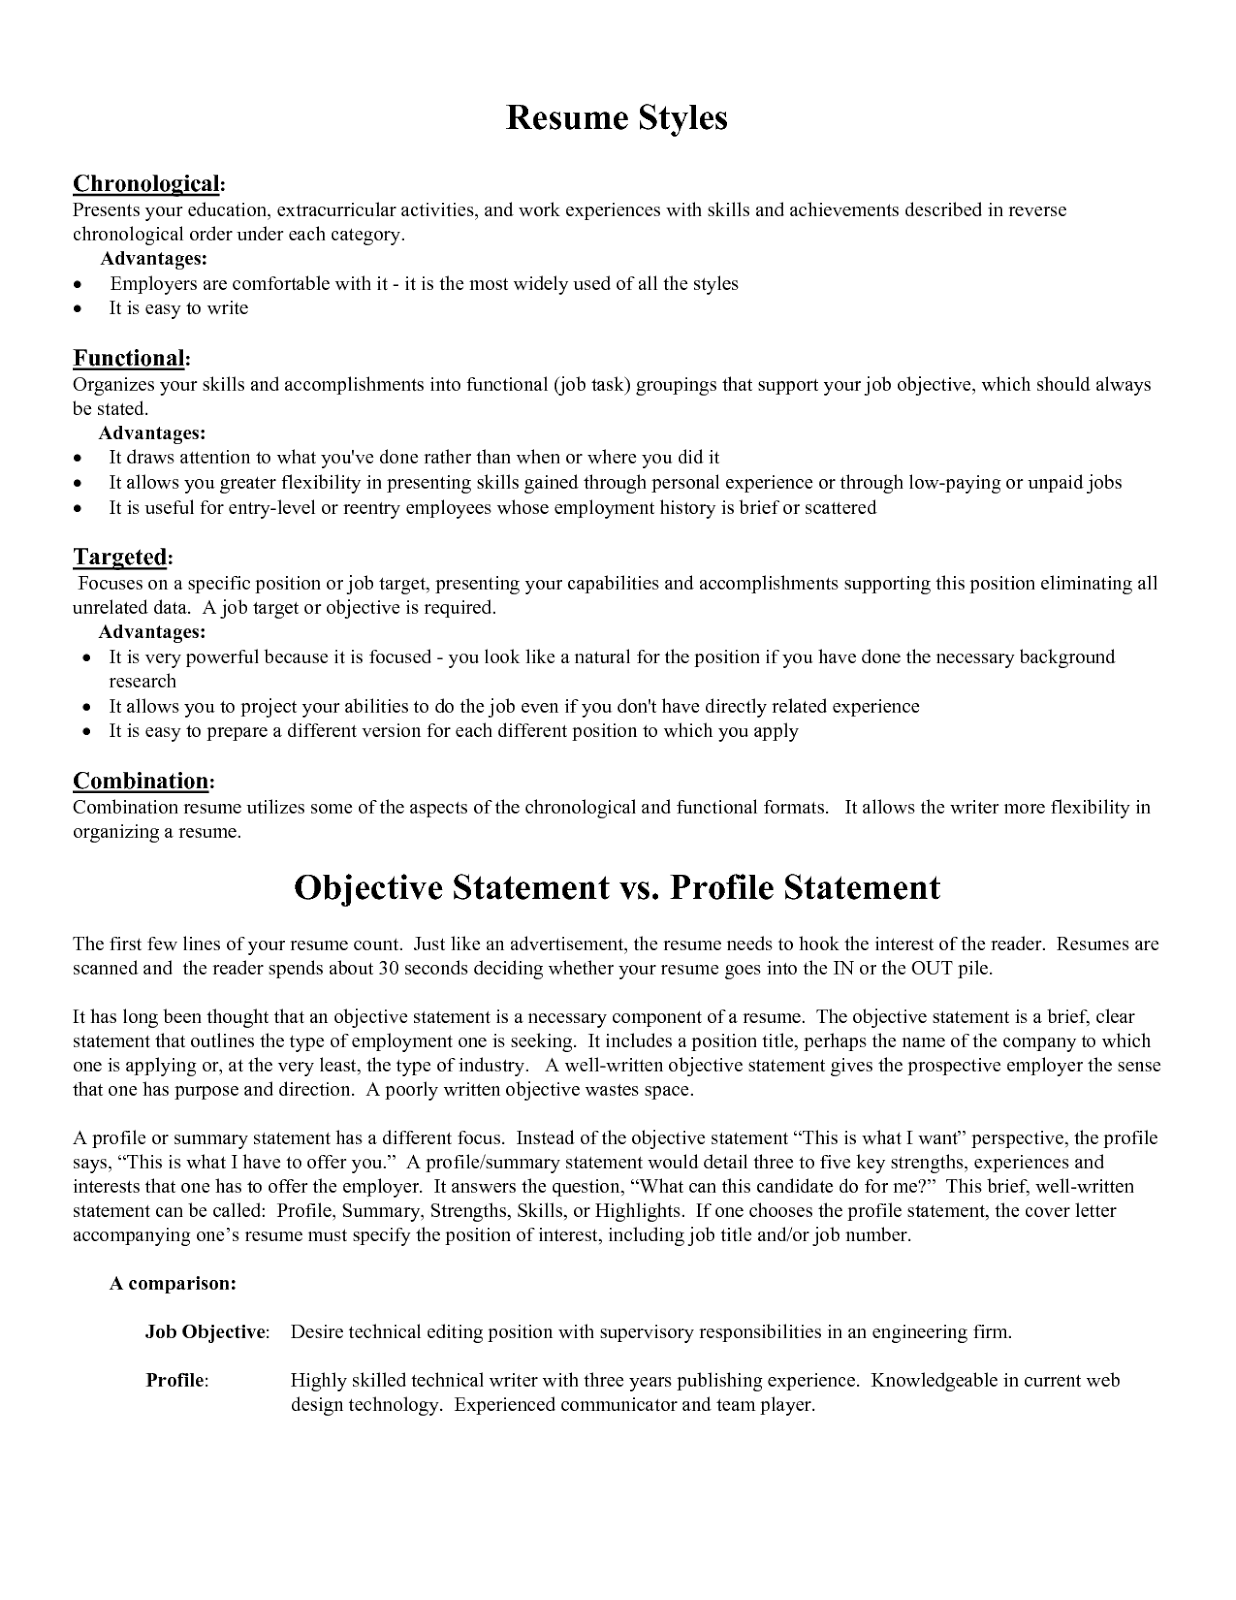 objective statement for resume examples, general objective statement for resume, employment objective for resume, free-sampleresumes.blogspot.com